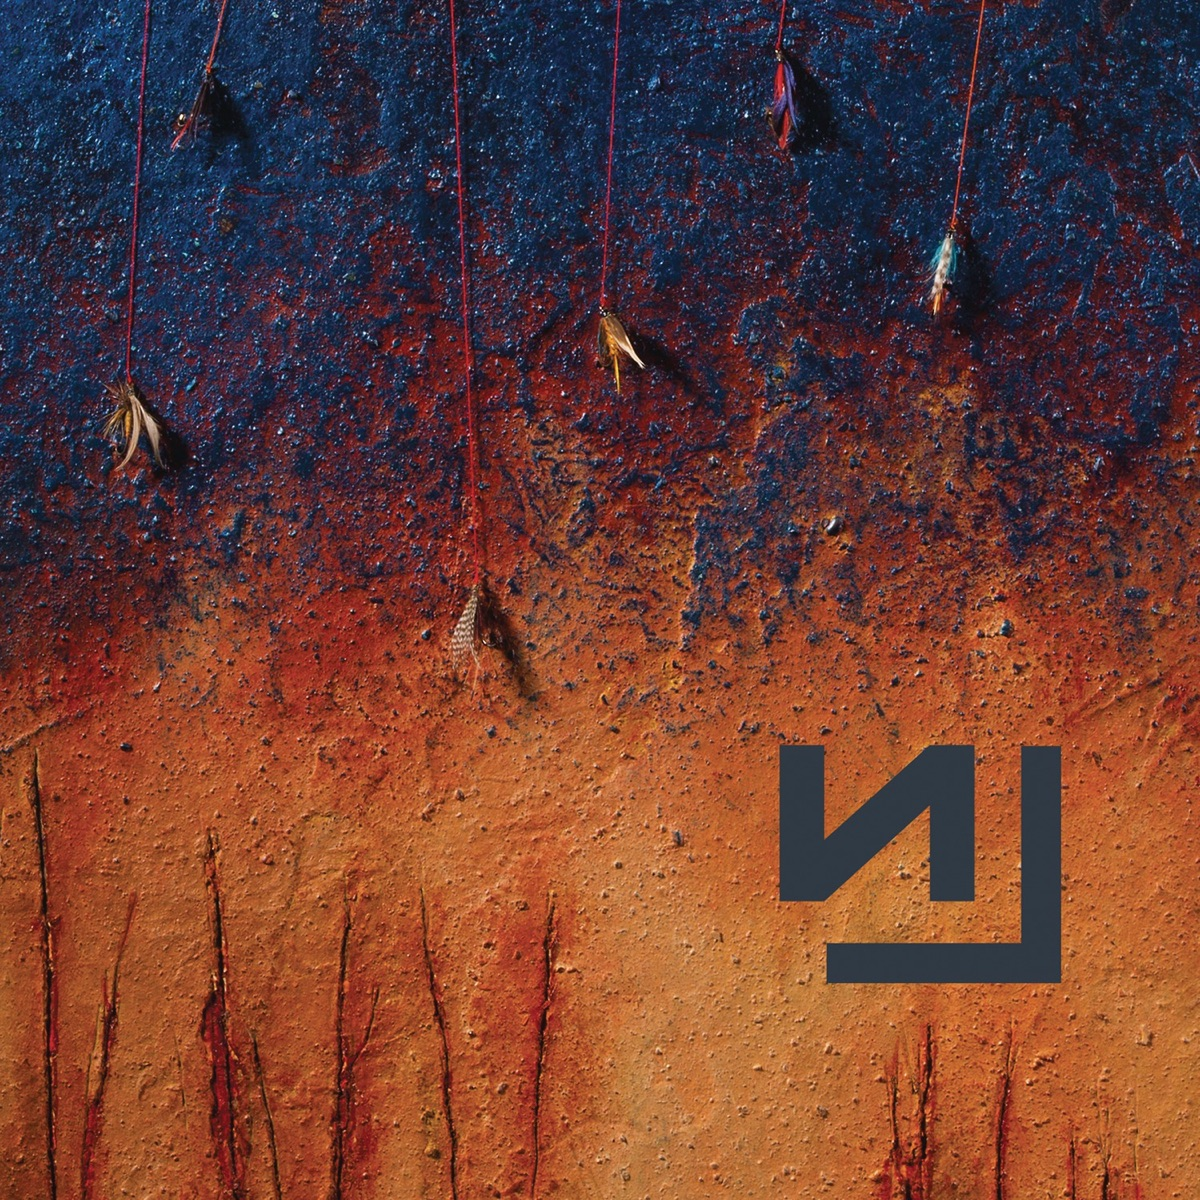 Hesitation Marks Album Cover By Nine Inch Nails